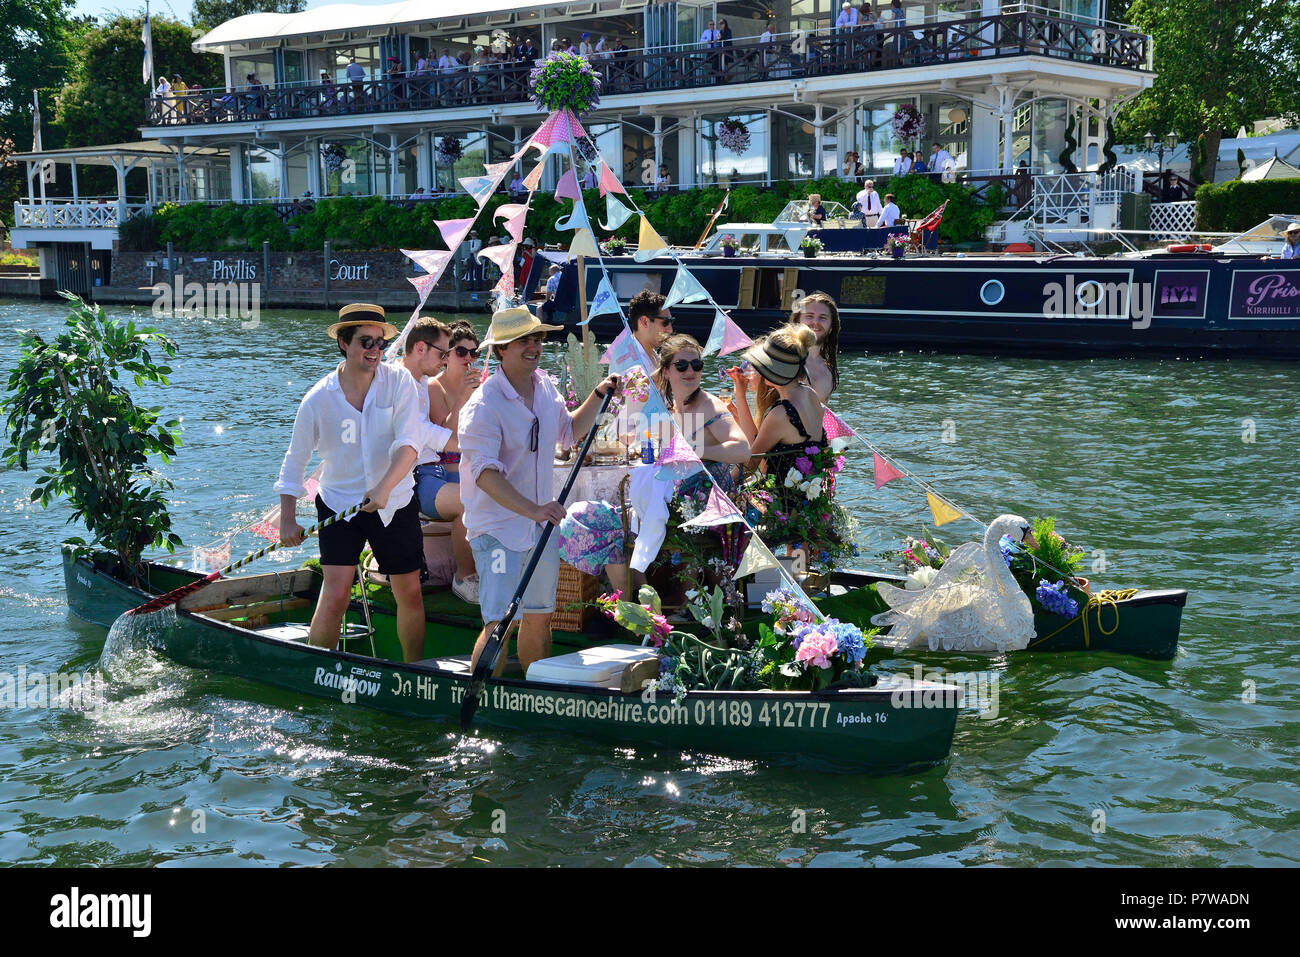 Henley-on-Thames, UK. 08th July, 2018. Finals day at Henley Royal Regatta was a spectacle for the crowds both by the thrilling rowing and unusual watercraft on the River Thames. Credit Wendy Johnson/Alamy Live News - Stock Image